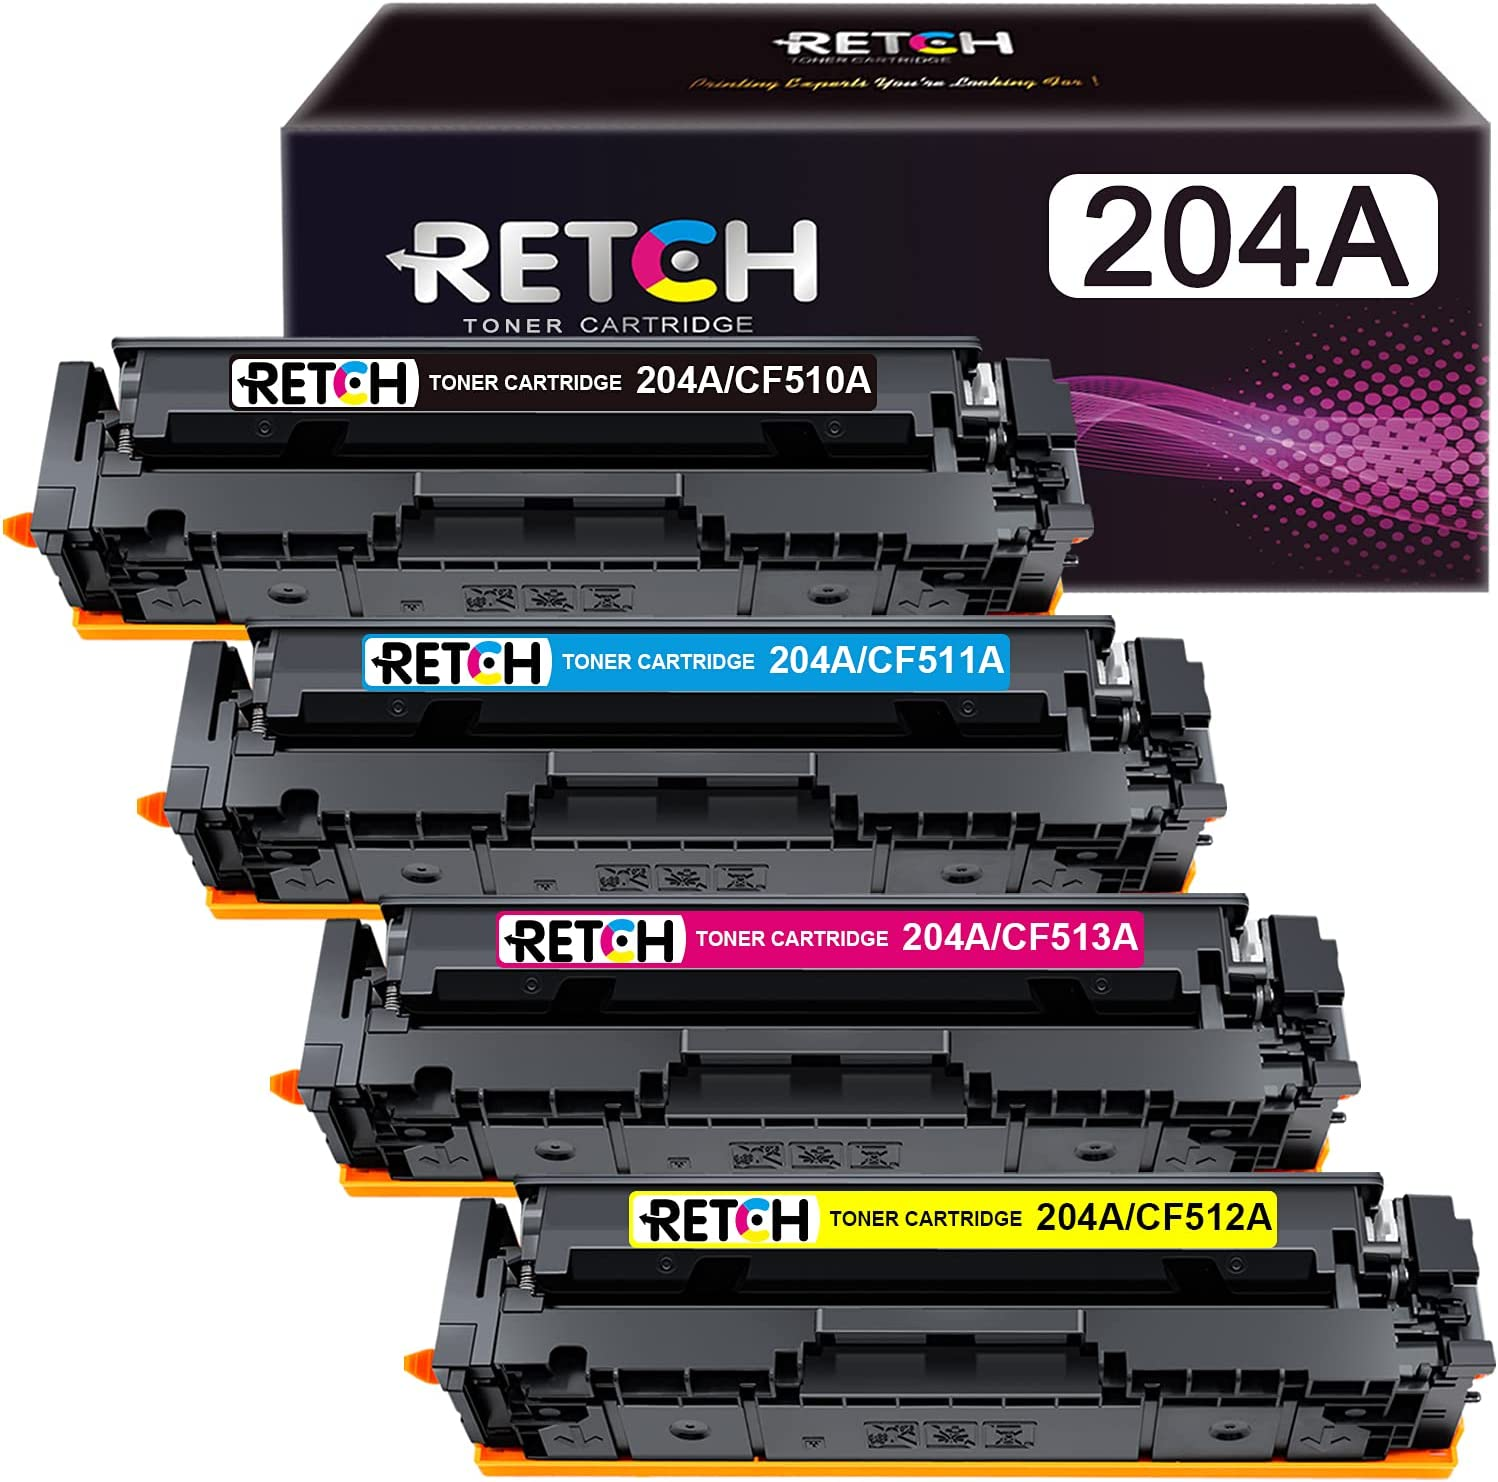 RETCH Compatible Toner Cartridges 204A Tray Replacement for HP 204 204A CF510A CF511A CF512A CF513A for HP Pro MFP M180nw M180n M181 M181fw M154a M154nw Printer (Black, Cyan, Magenta, Yellow)